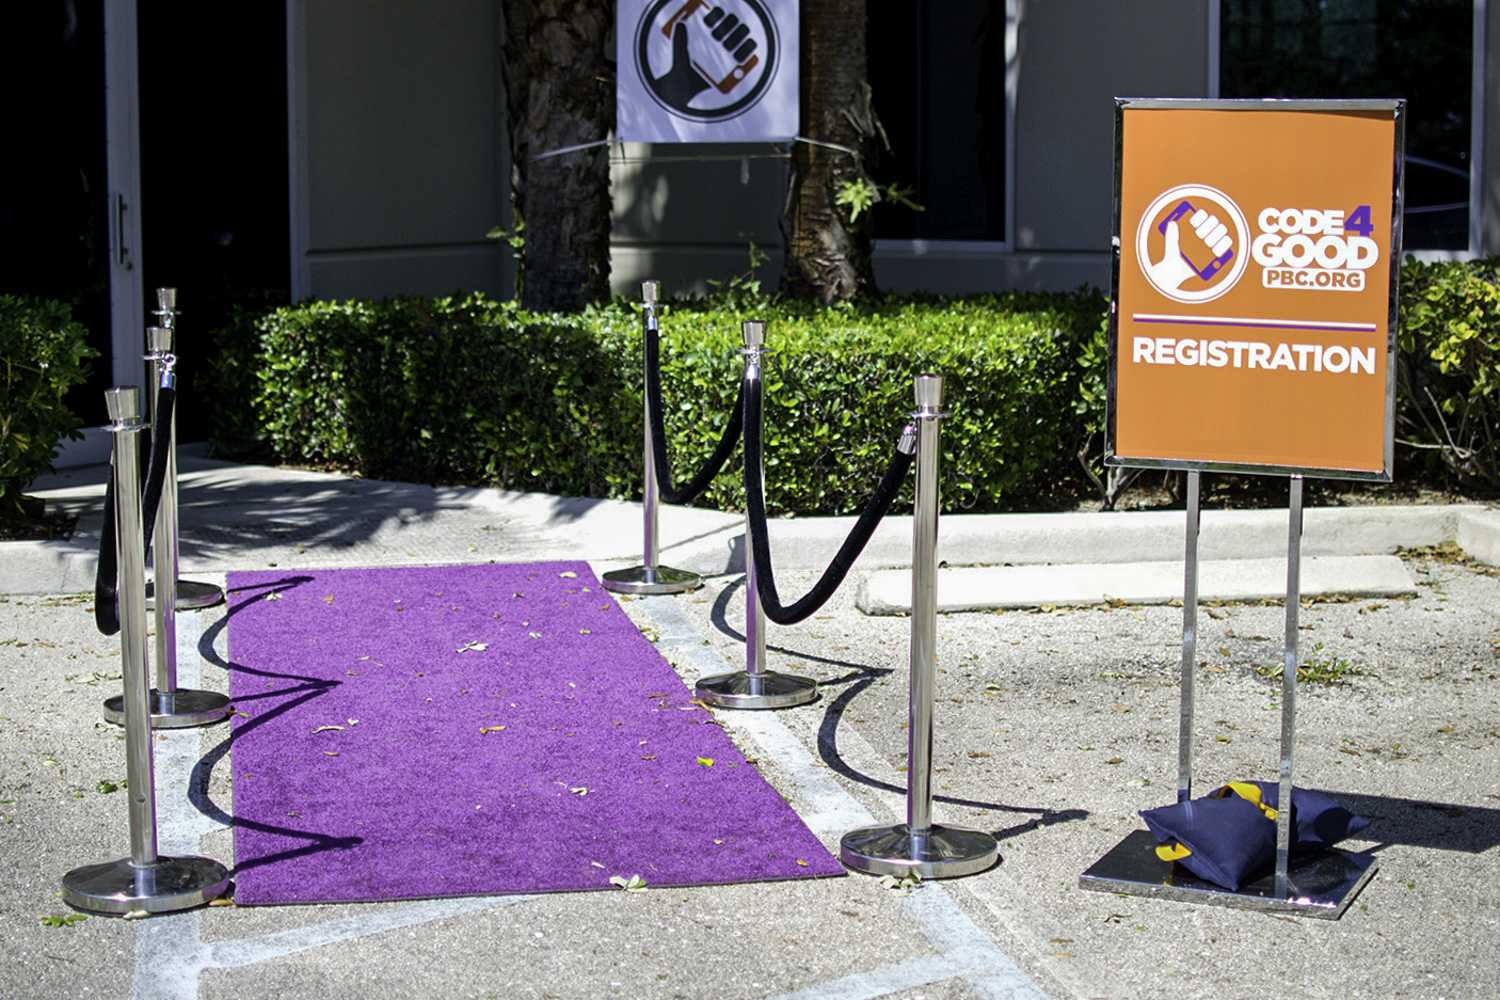 The purple carpet was rolled out for Palm Beach County's first hackathon. Photo by Alexis Hayward | Web Assistant